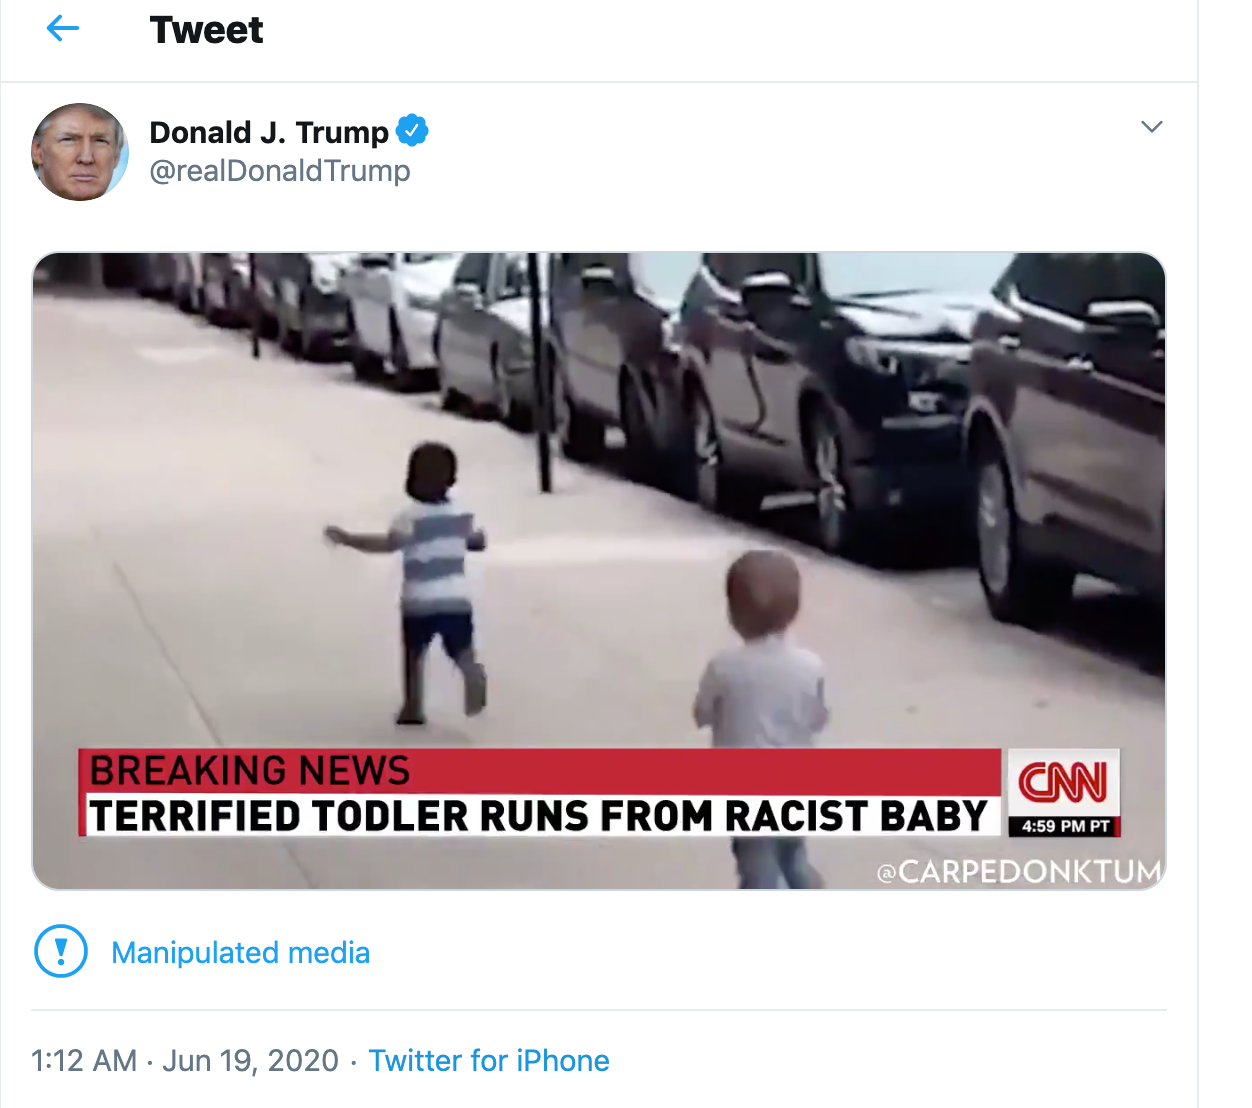 Twitter Flags Video Shared By Trump As 'Manipulated Media'